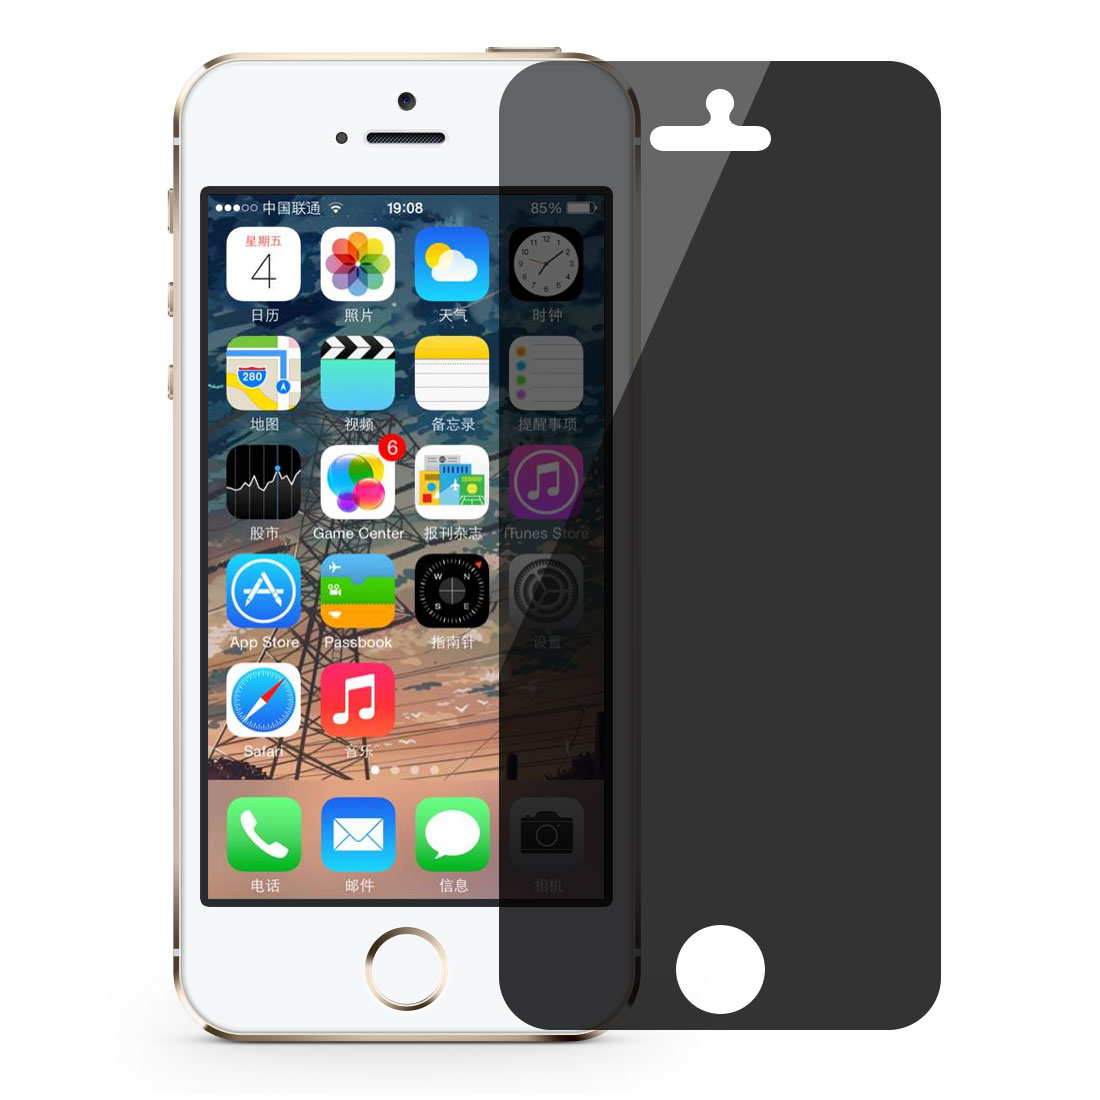 Dust Absorber LCD Guide Dedust Sticker Black 12 x 5.5cm for iphone 5 Screen